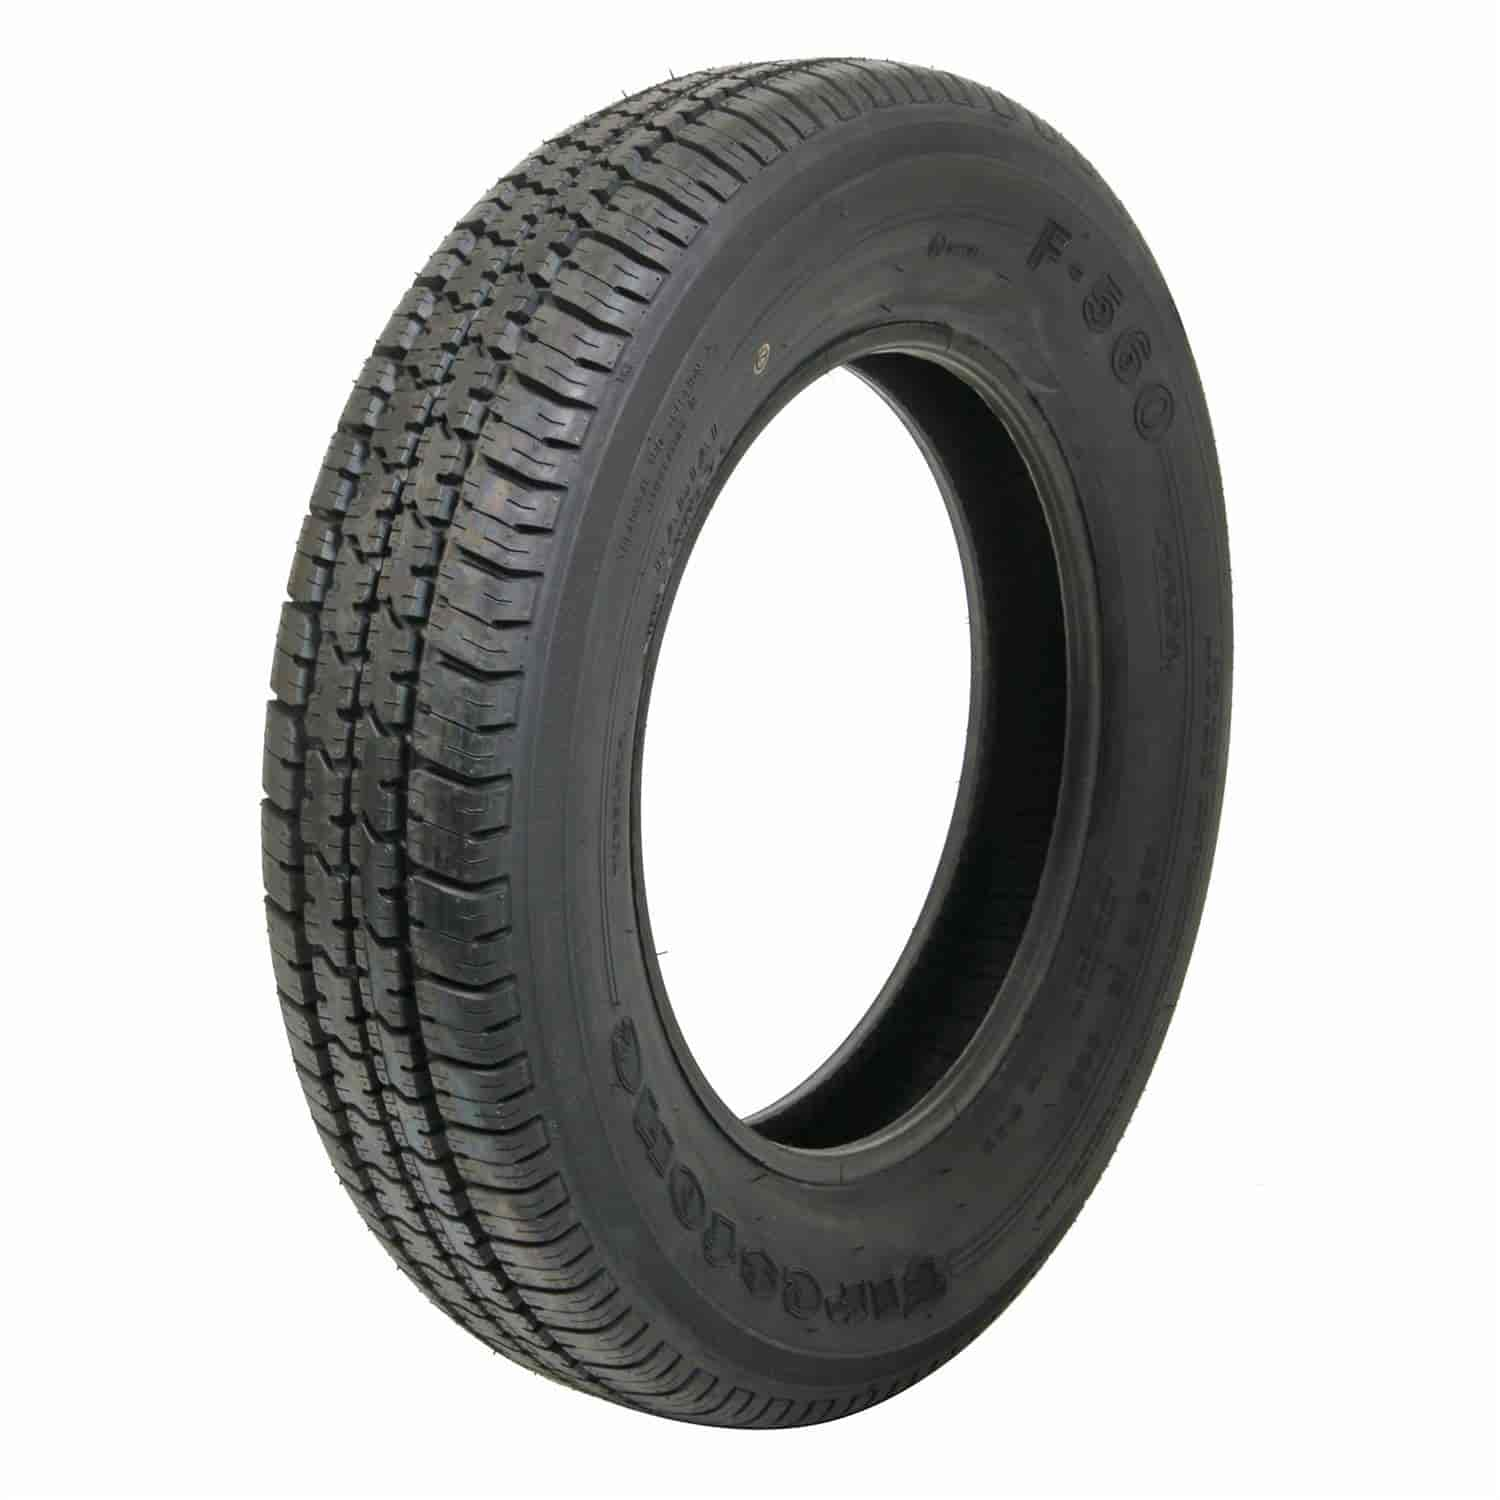 Firestone Tires Near Me >> Coker Tire 568741 Firestone Radial F560 Tire 165r15 Jegs